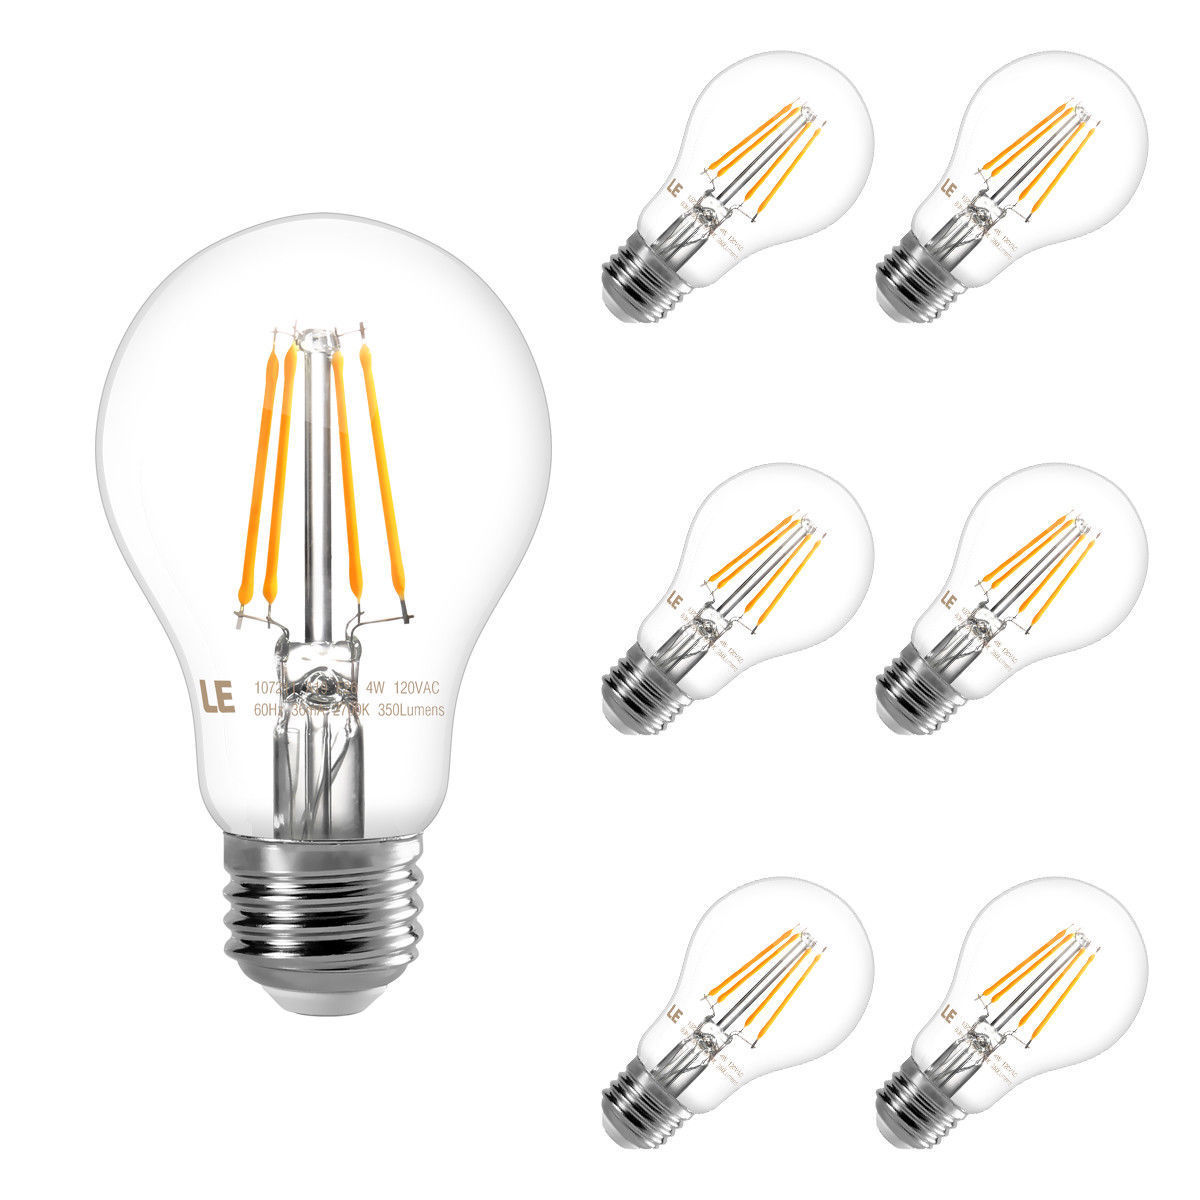 Lighting EVER 4W A19 E26 Base LED Filament Light Bulbs, Dimmable 2700K Warm White LED Bulbs, 40W Incandescent Bulbs Equivalent, 6 Pack